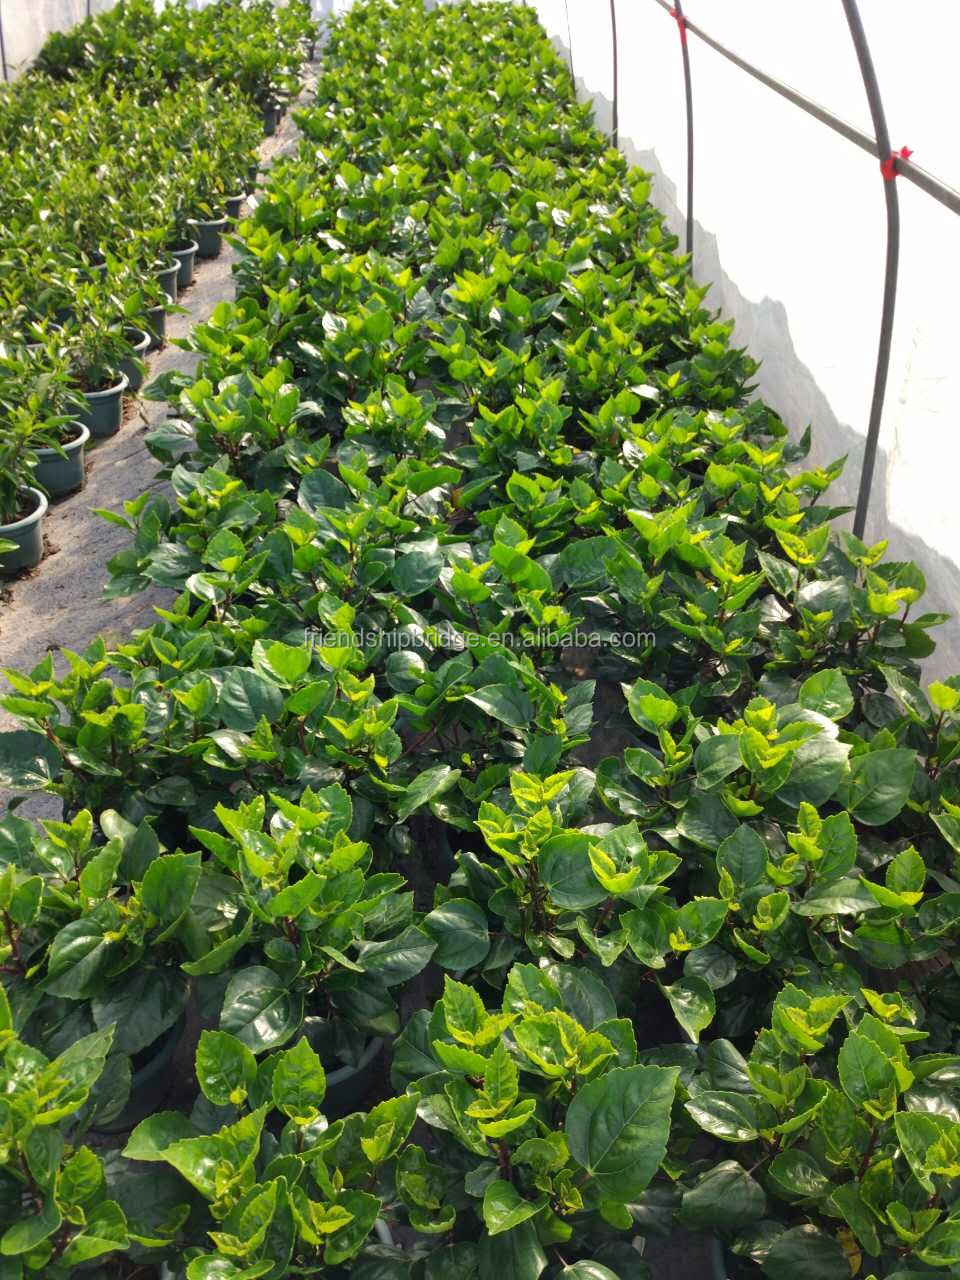 Wholesale Potted Rosa Sinensis Linn Houseplant Chinese Hibiscus ...